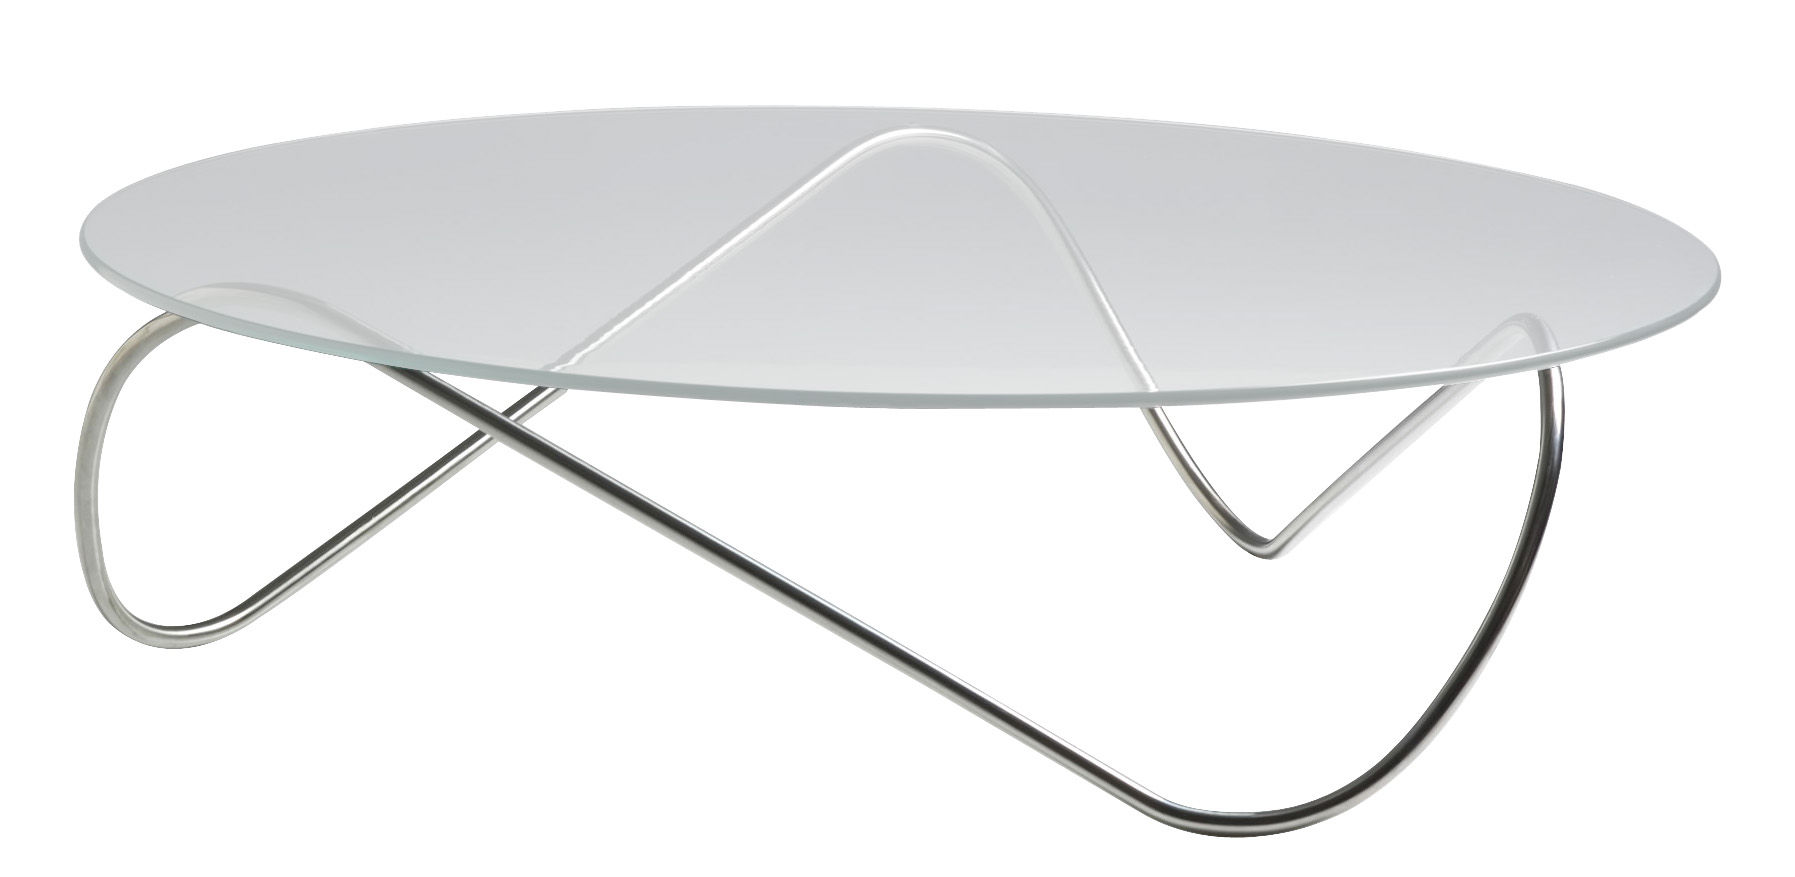 Furniture - Coffee Tables - Kaeko Coffee table by Objekto - Stainless steel structure - Polished stainless steel, Soak glass